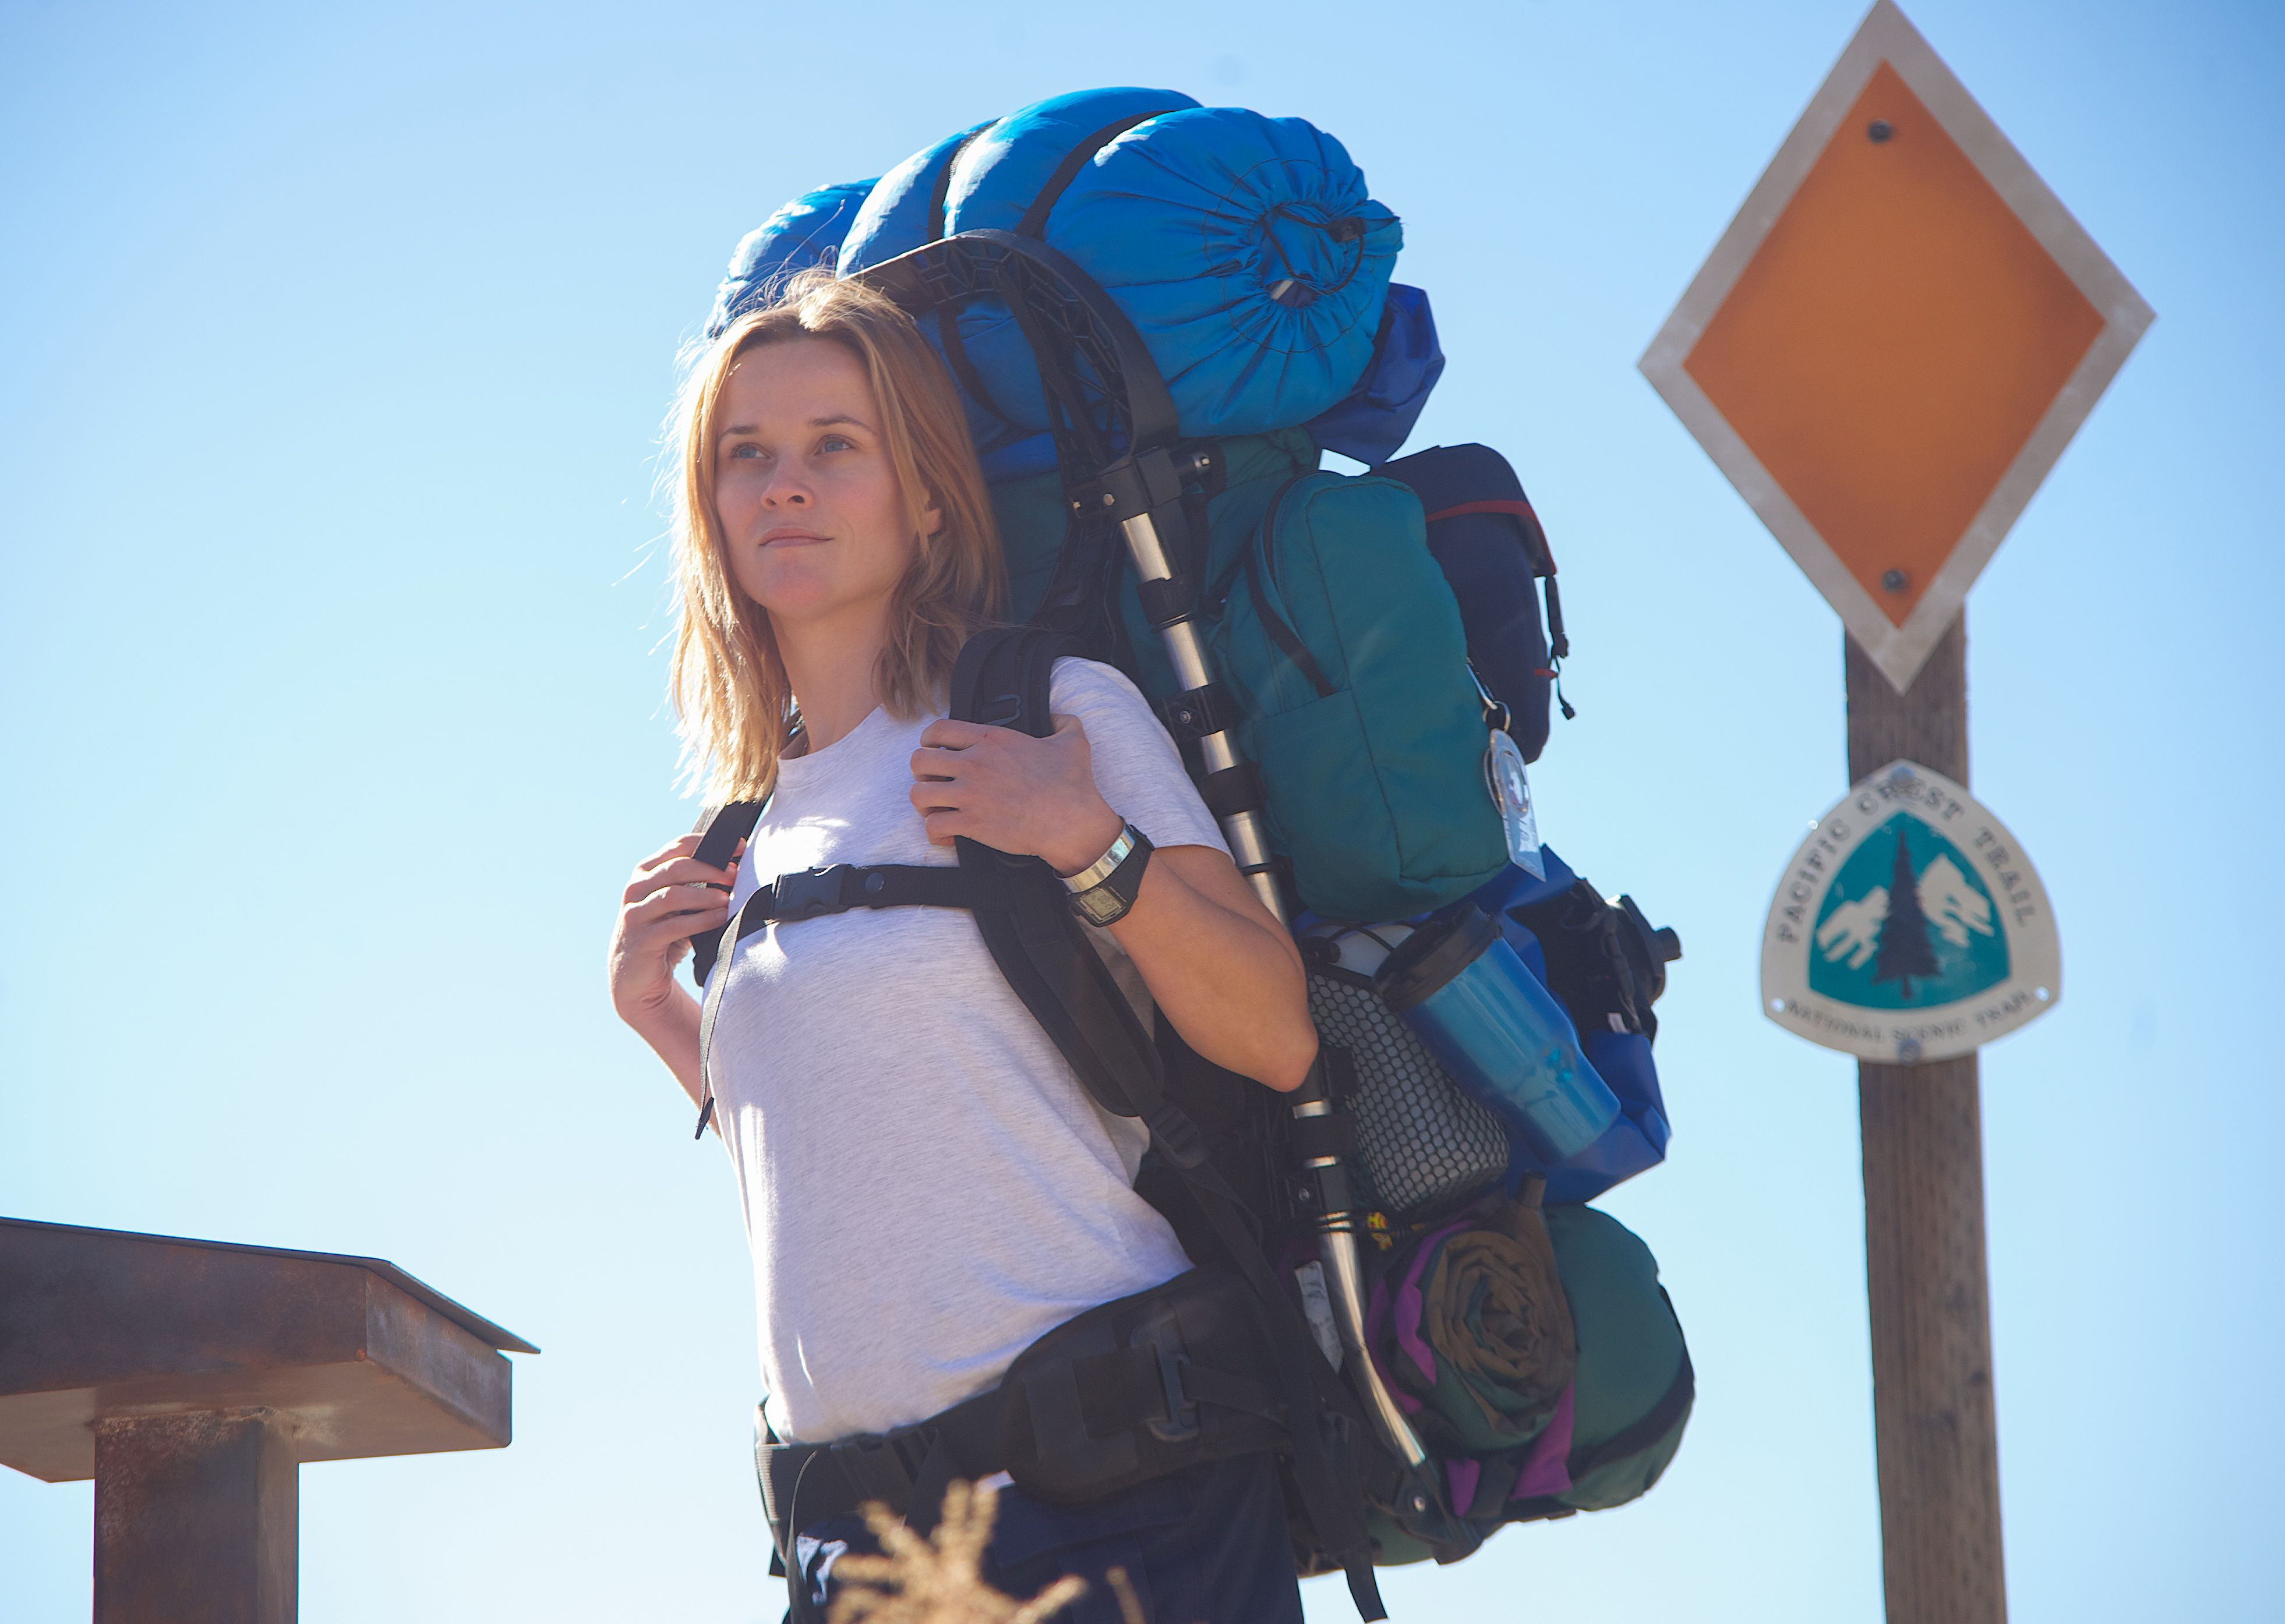 Reese Witherspoon backpacking in Wild